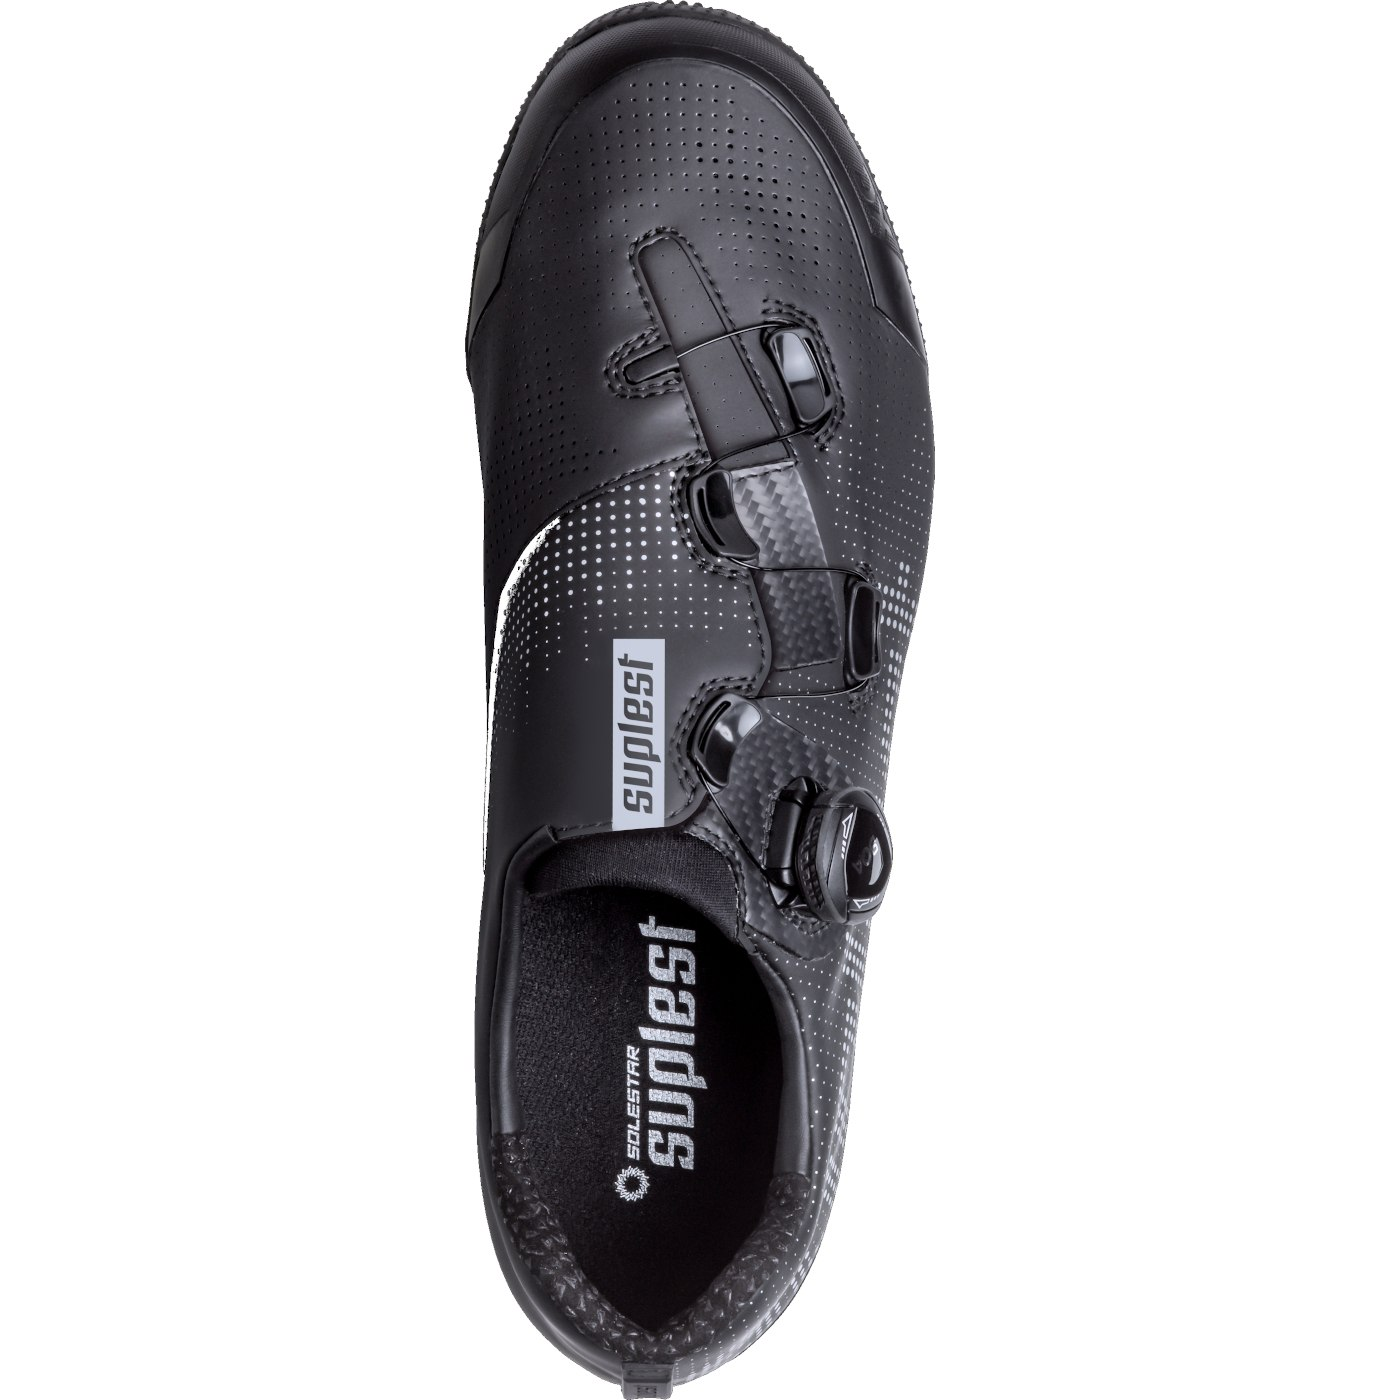 Image of Suplest EDGE+ BOA IP1 Crosscountry Performance Shoe - Black / Silver 02.041.